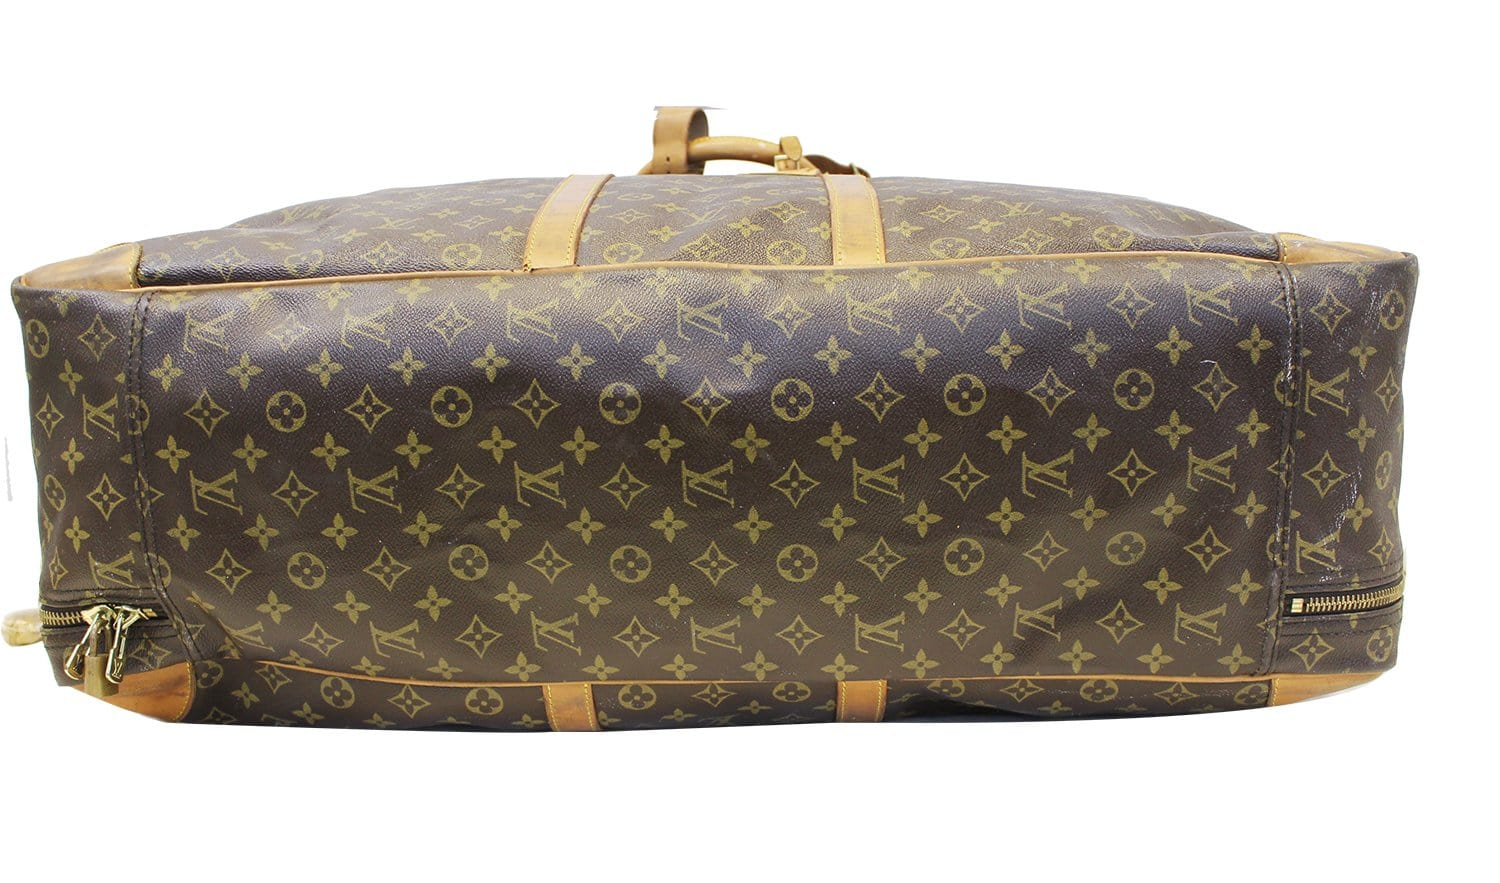 b57be314a1d5 LOUIS VUITTON Monogram Canvas Sirius 70 Soft Sided Suitcase